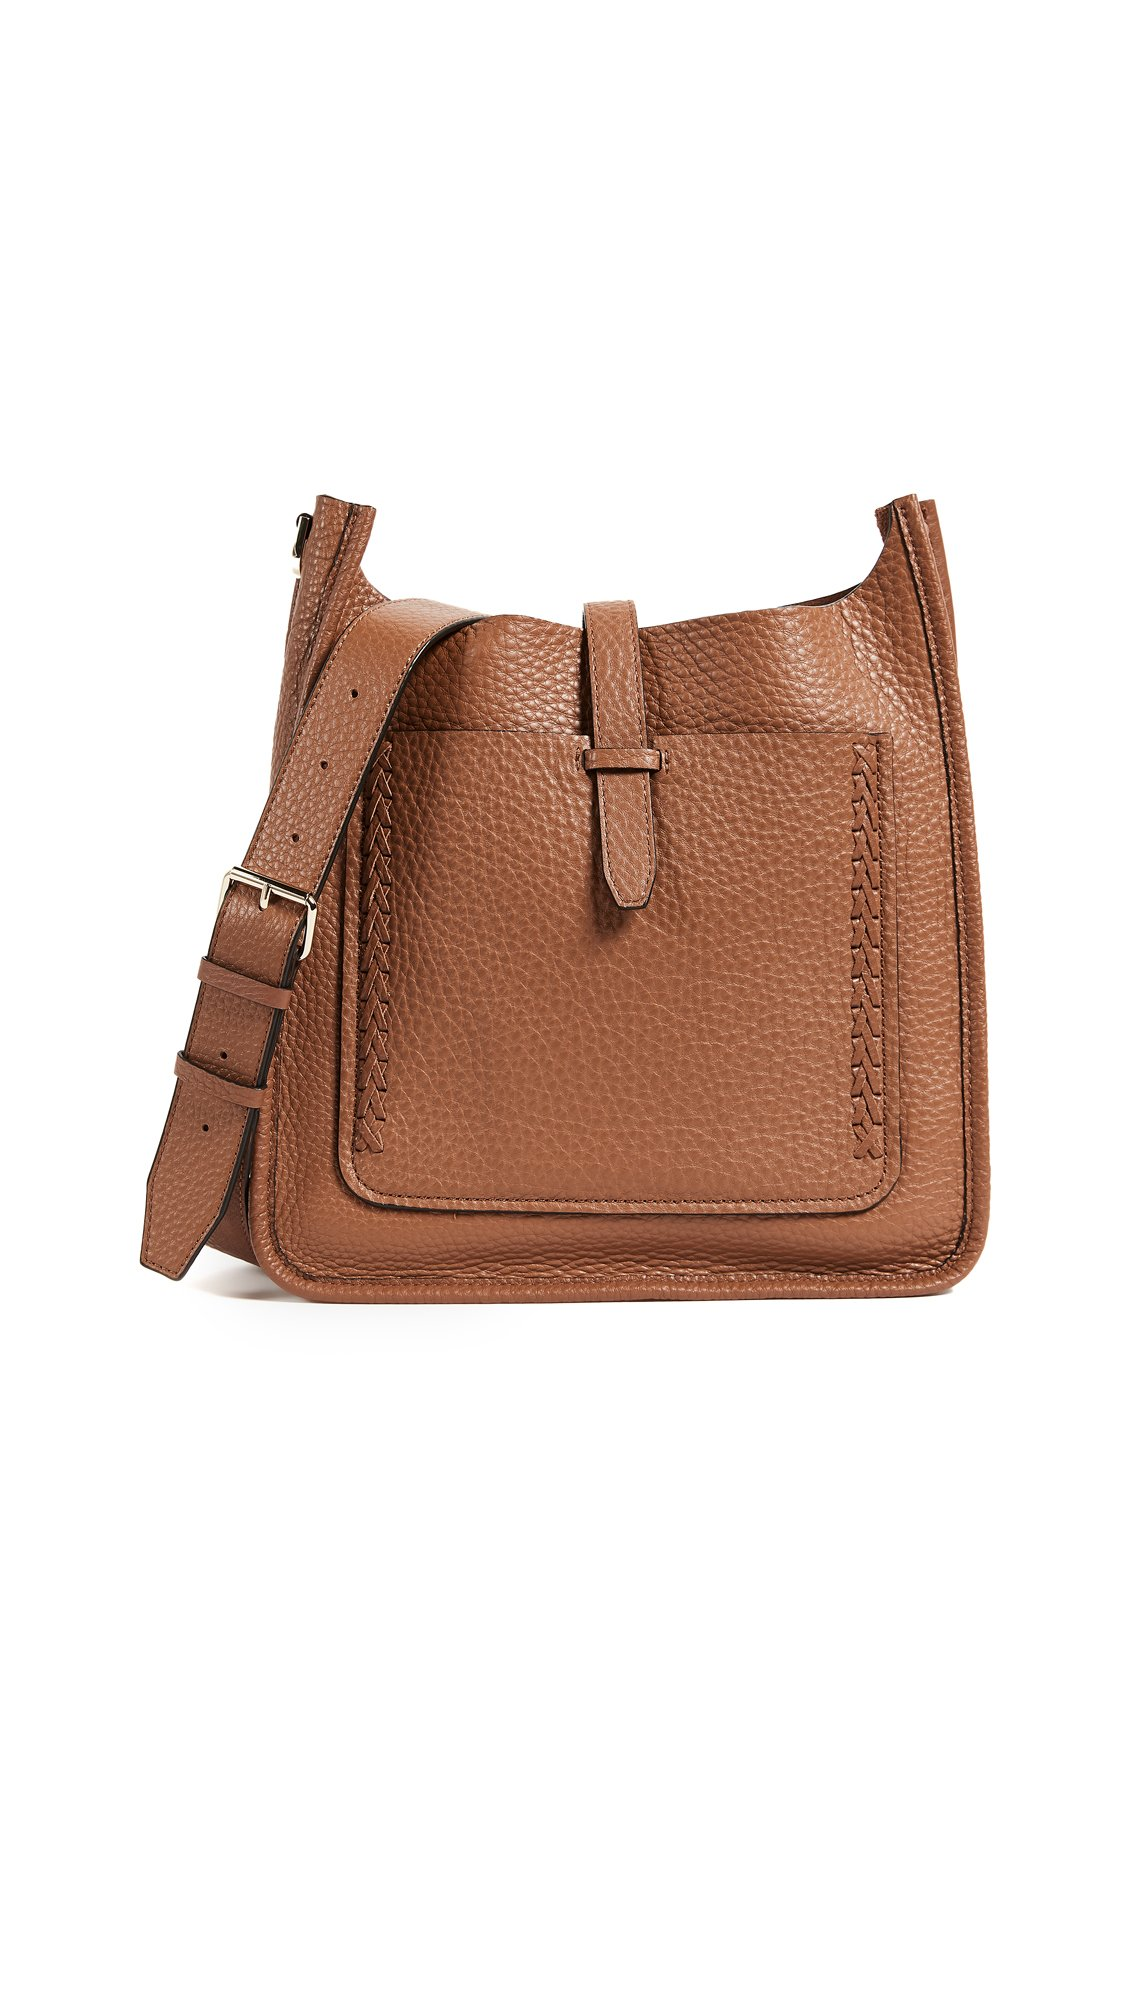 Rebecca Minkoff Women's Unlined Feed Bag with Whipstitch